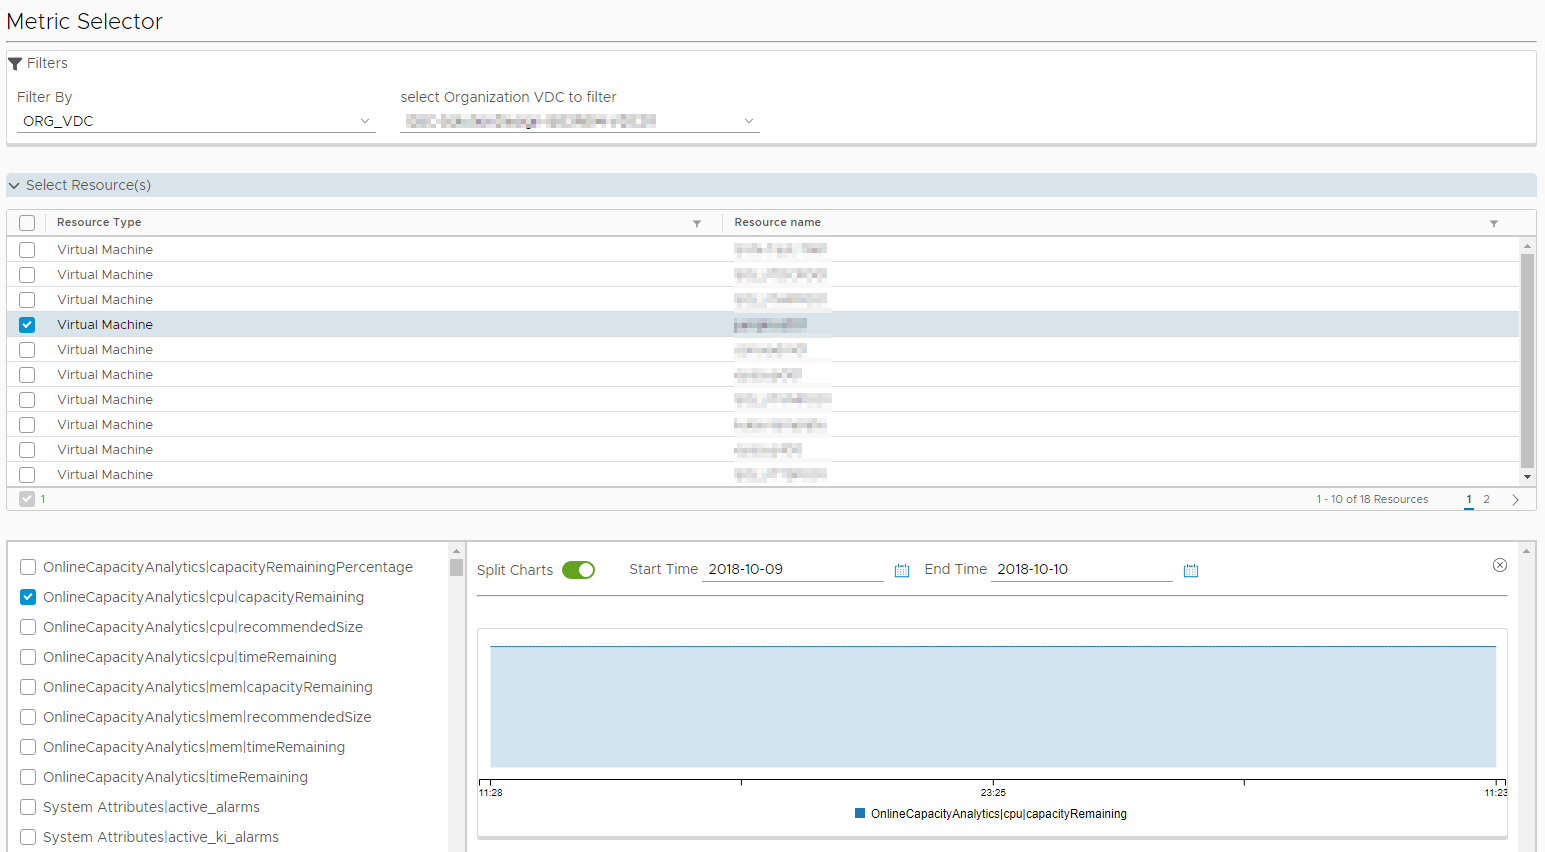 vRealize Operations Tenant App 2.0 for vCloud Director - Metric Selector